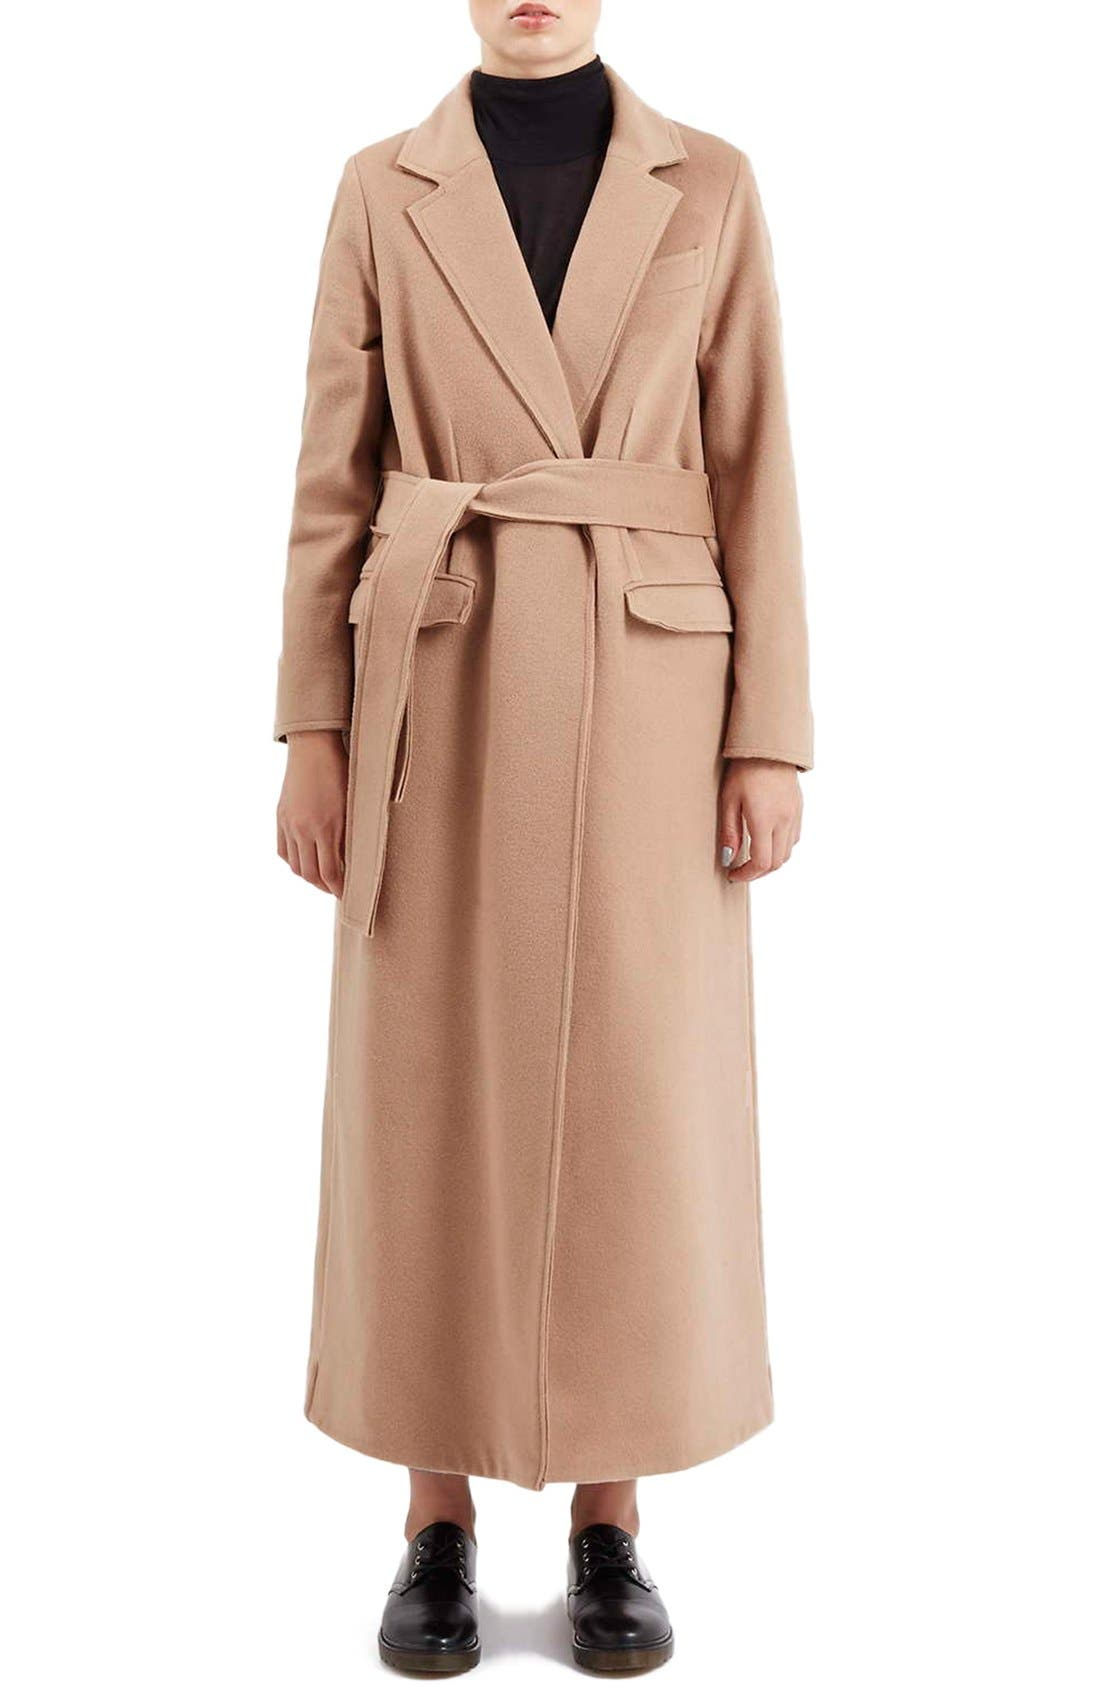 TOPSHOP BOUTIQUE Wrap Coat, Main, color, 252